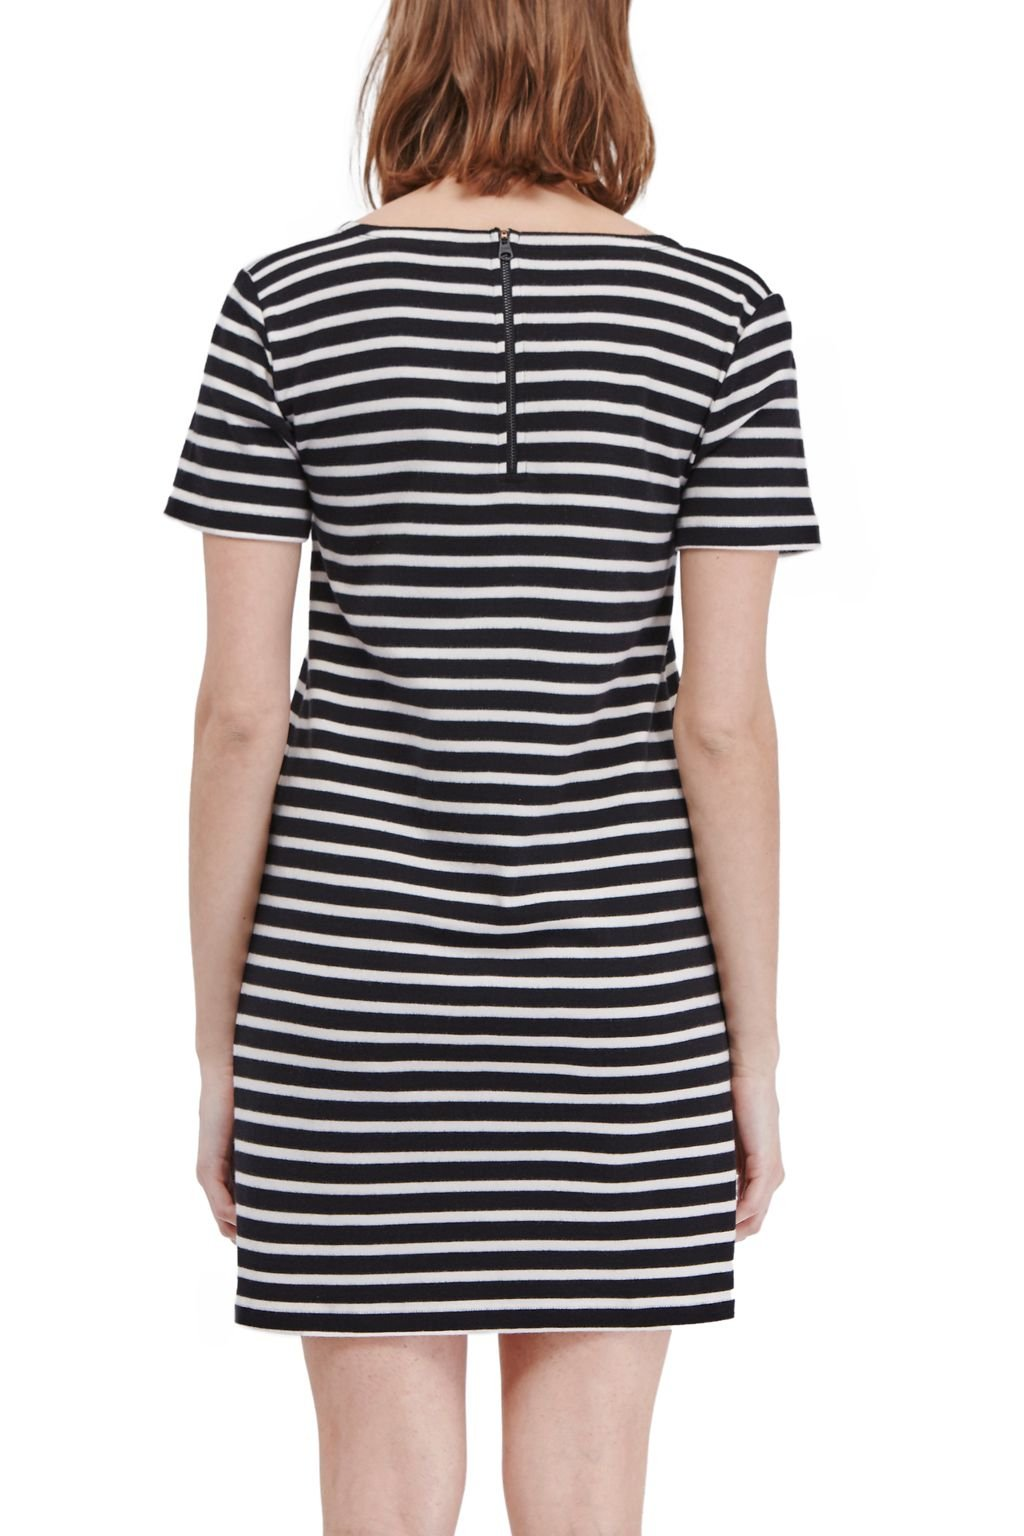 French connection annie striped t shirt dress in blue lyst for French connection t shirt dress